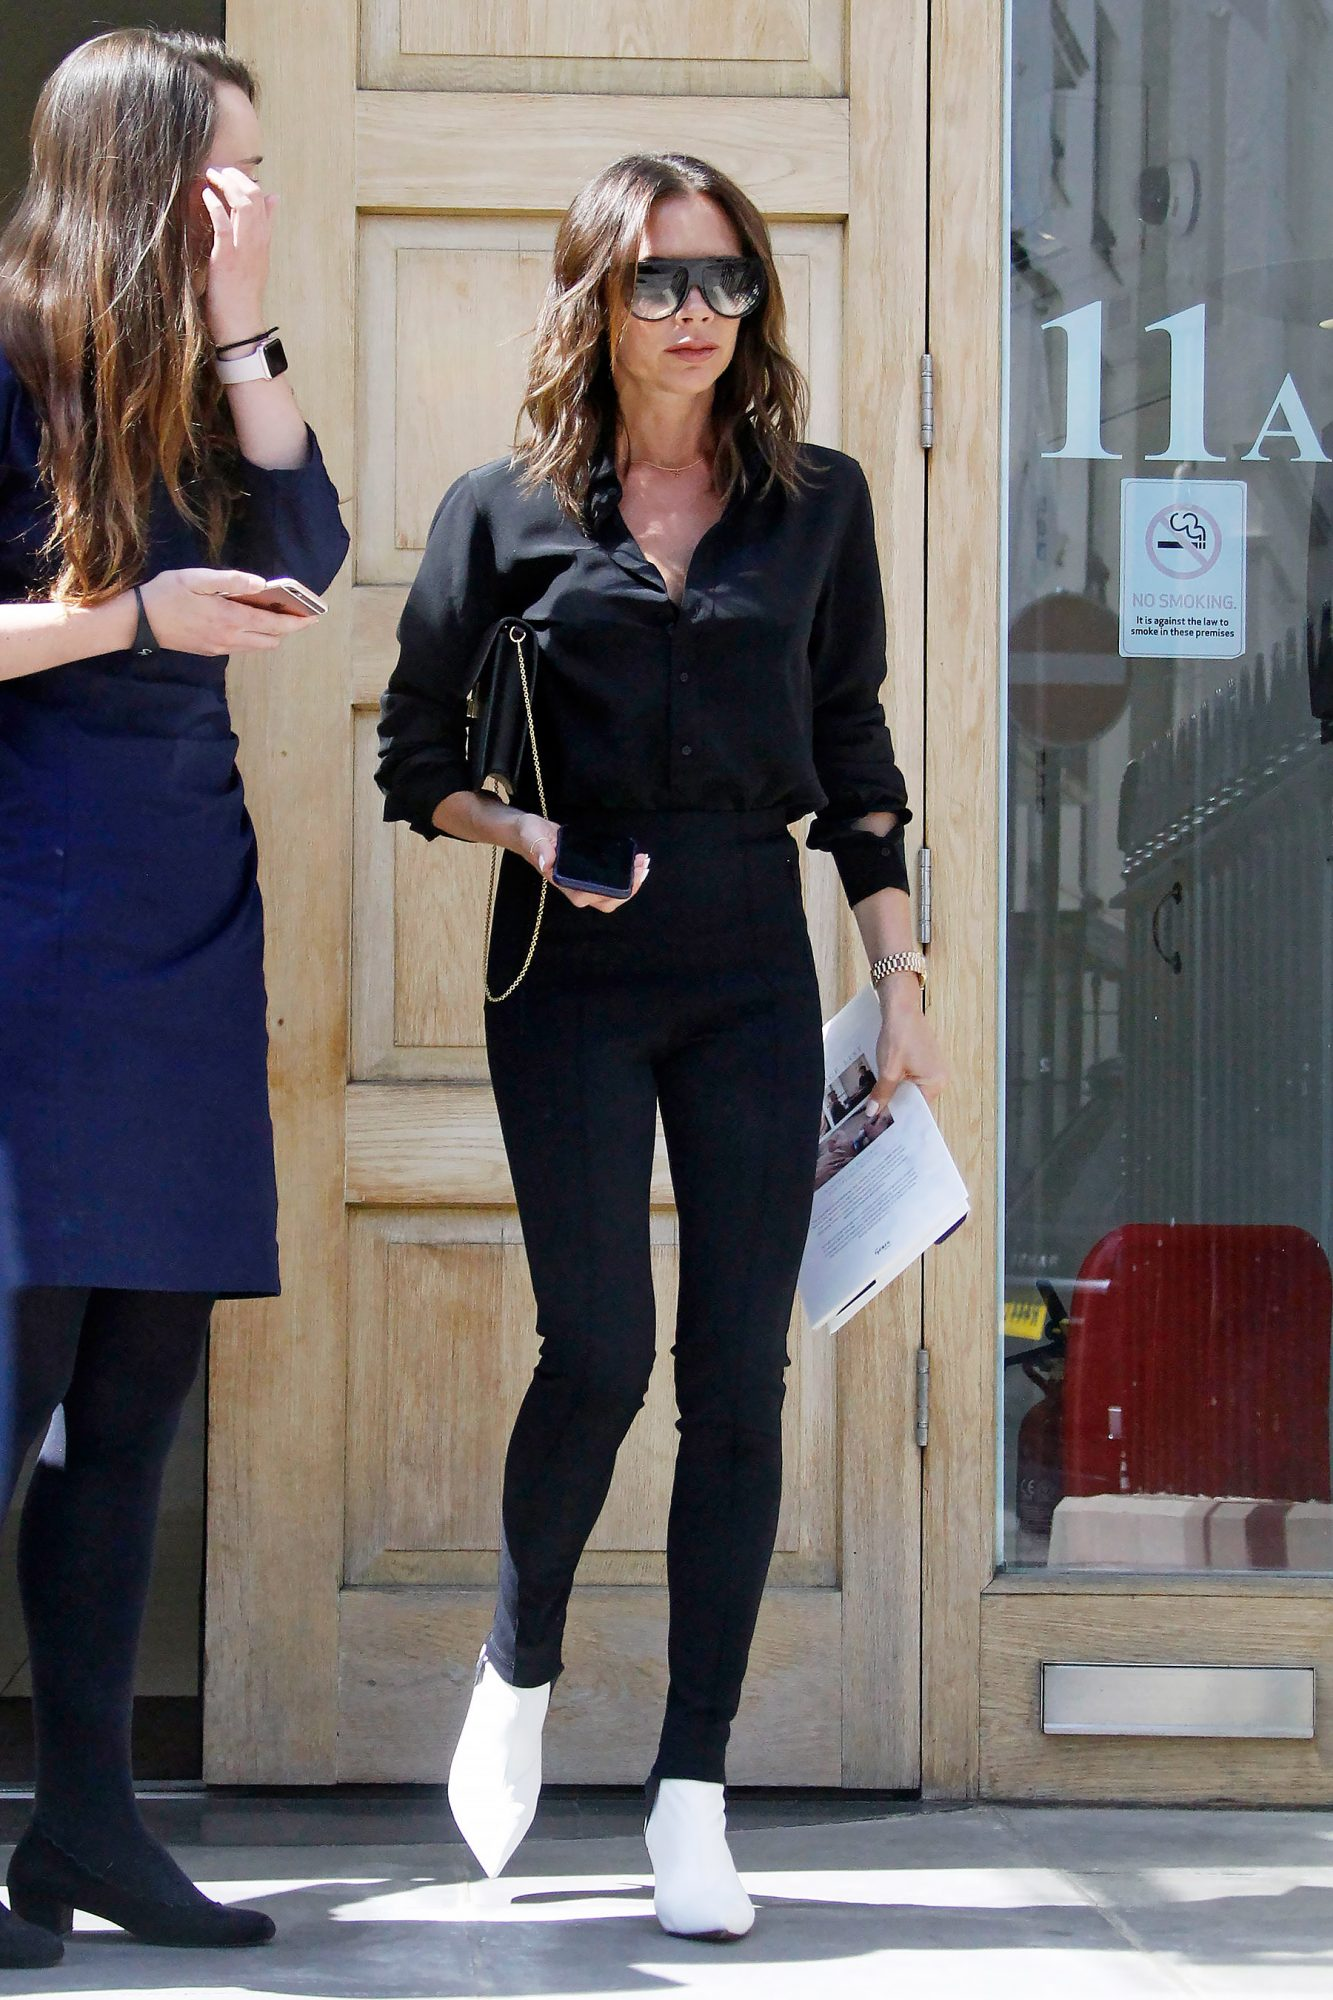 EXCLUSIVE: **EXCL*Victoria Beckham Looks Stylish In An All Black Outfit In London